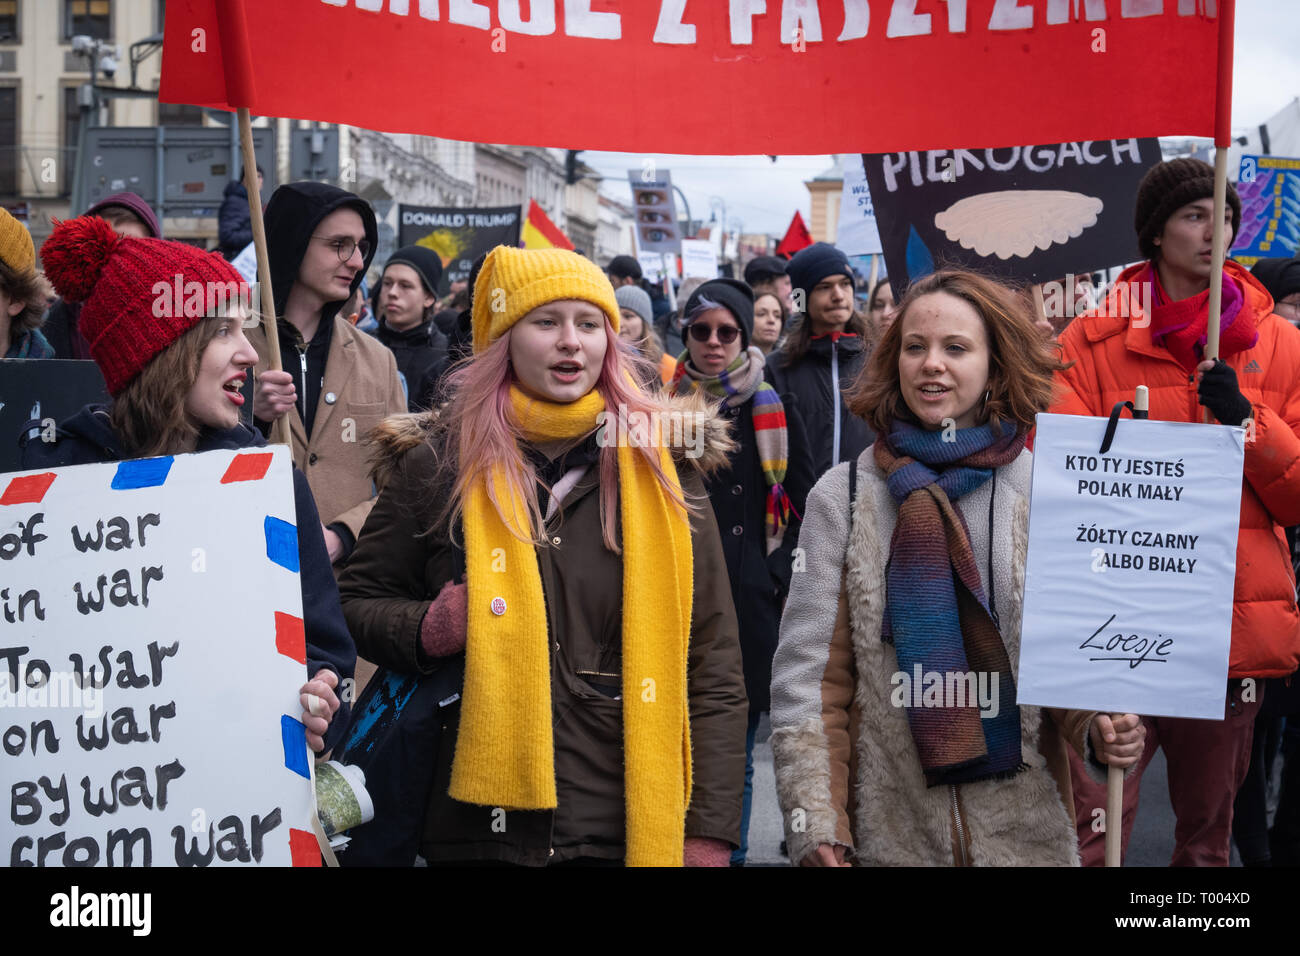 Warsaw, Poland. 16th March, 2019. Anti racist demonstration announced few weeks ago, due to tragic coincidence is also becoming a tribute to victims of terror attack in New Zealand. Antifascist and anti racist Polish organizations, collectives and NGO protest against any form of discrimination and growing wave and xenophobia and violence against immigrants. Robert Pastryk / Alamy Live News - Stock Image